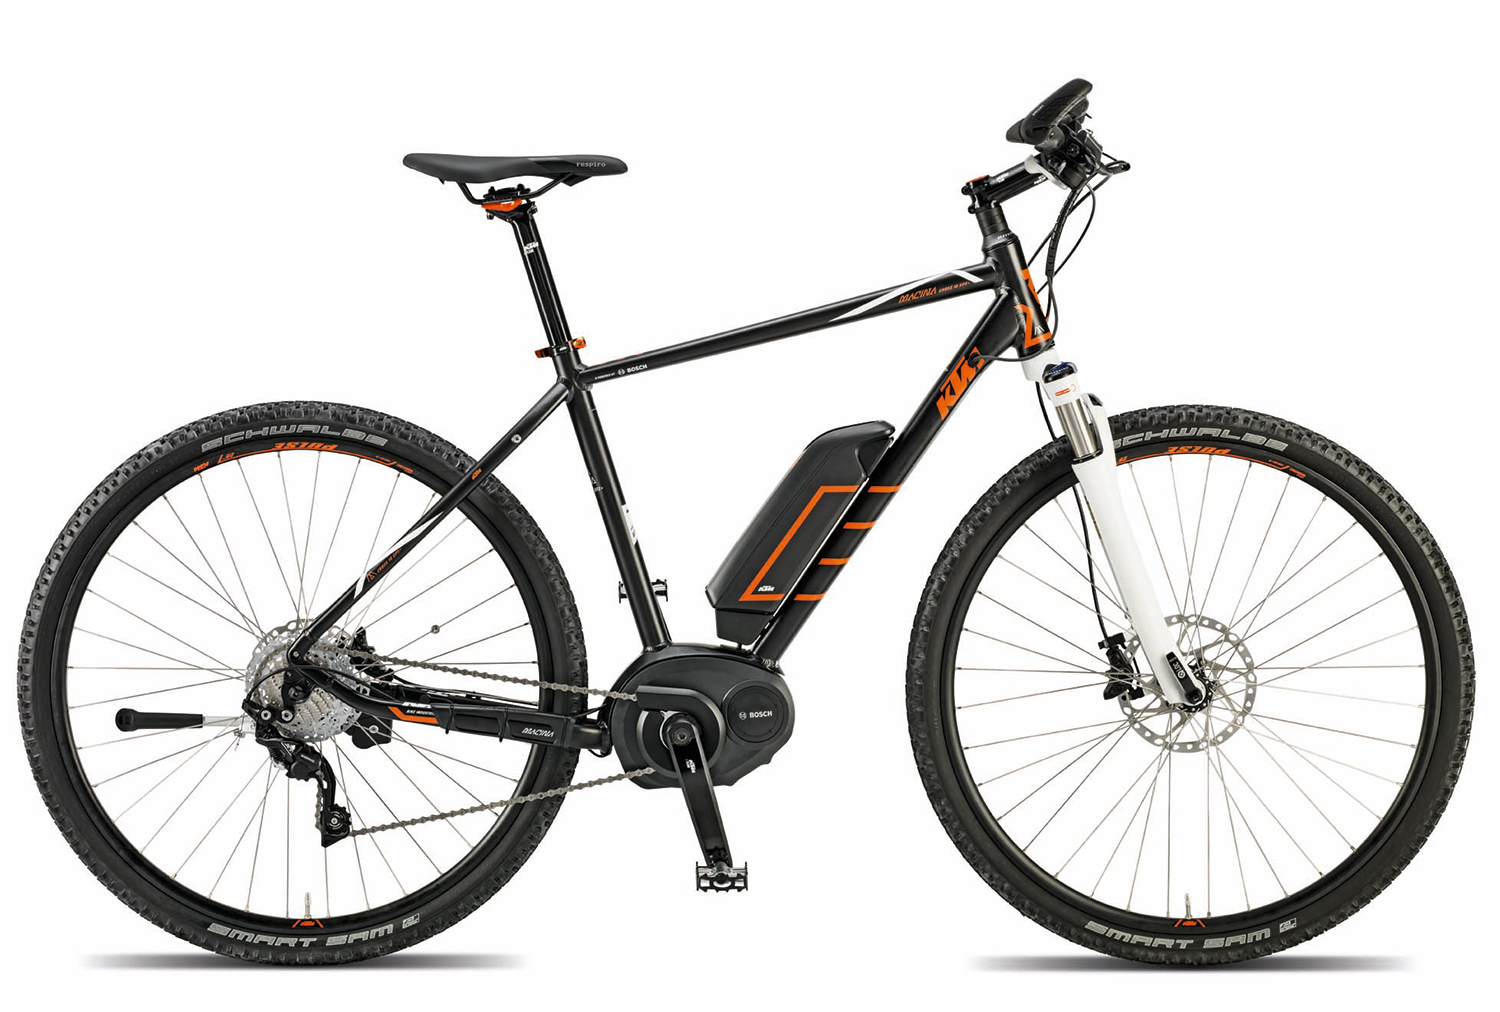 Ktm Macina Cross 10 Gps At The E Motion Store